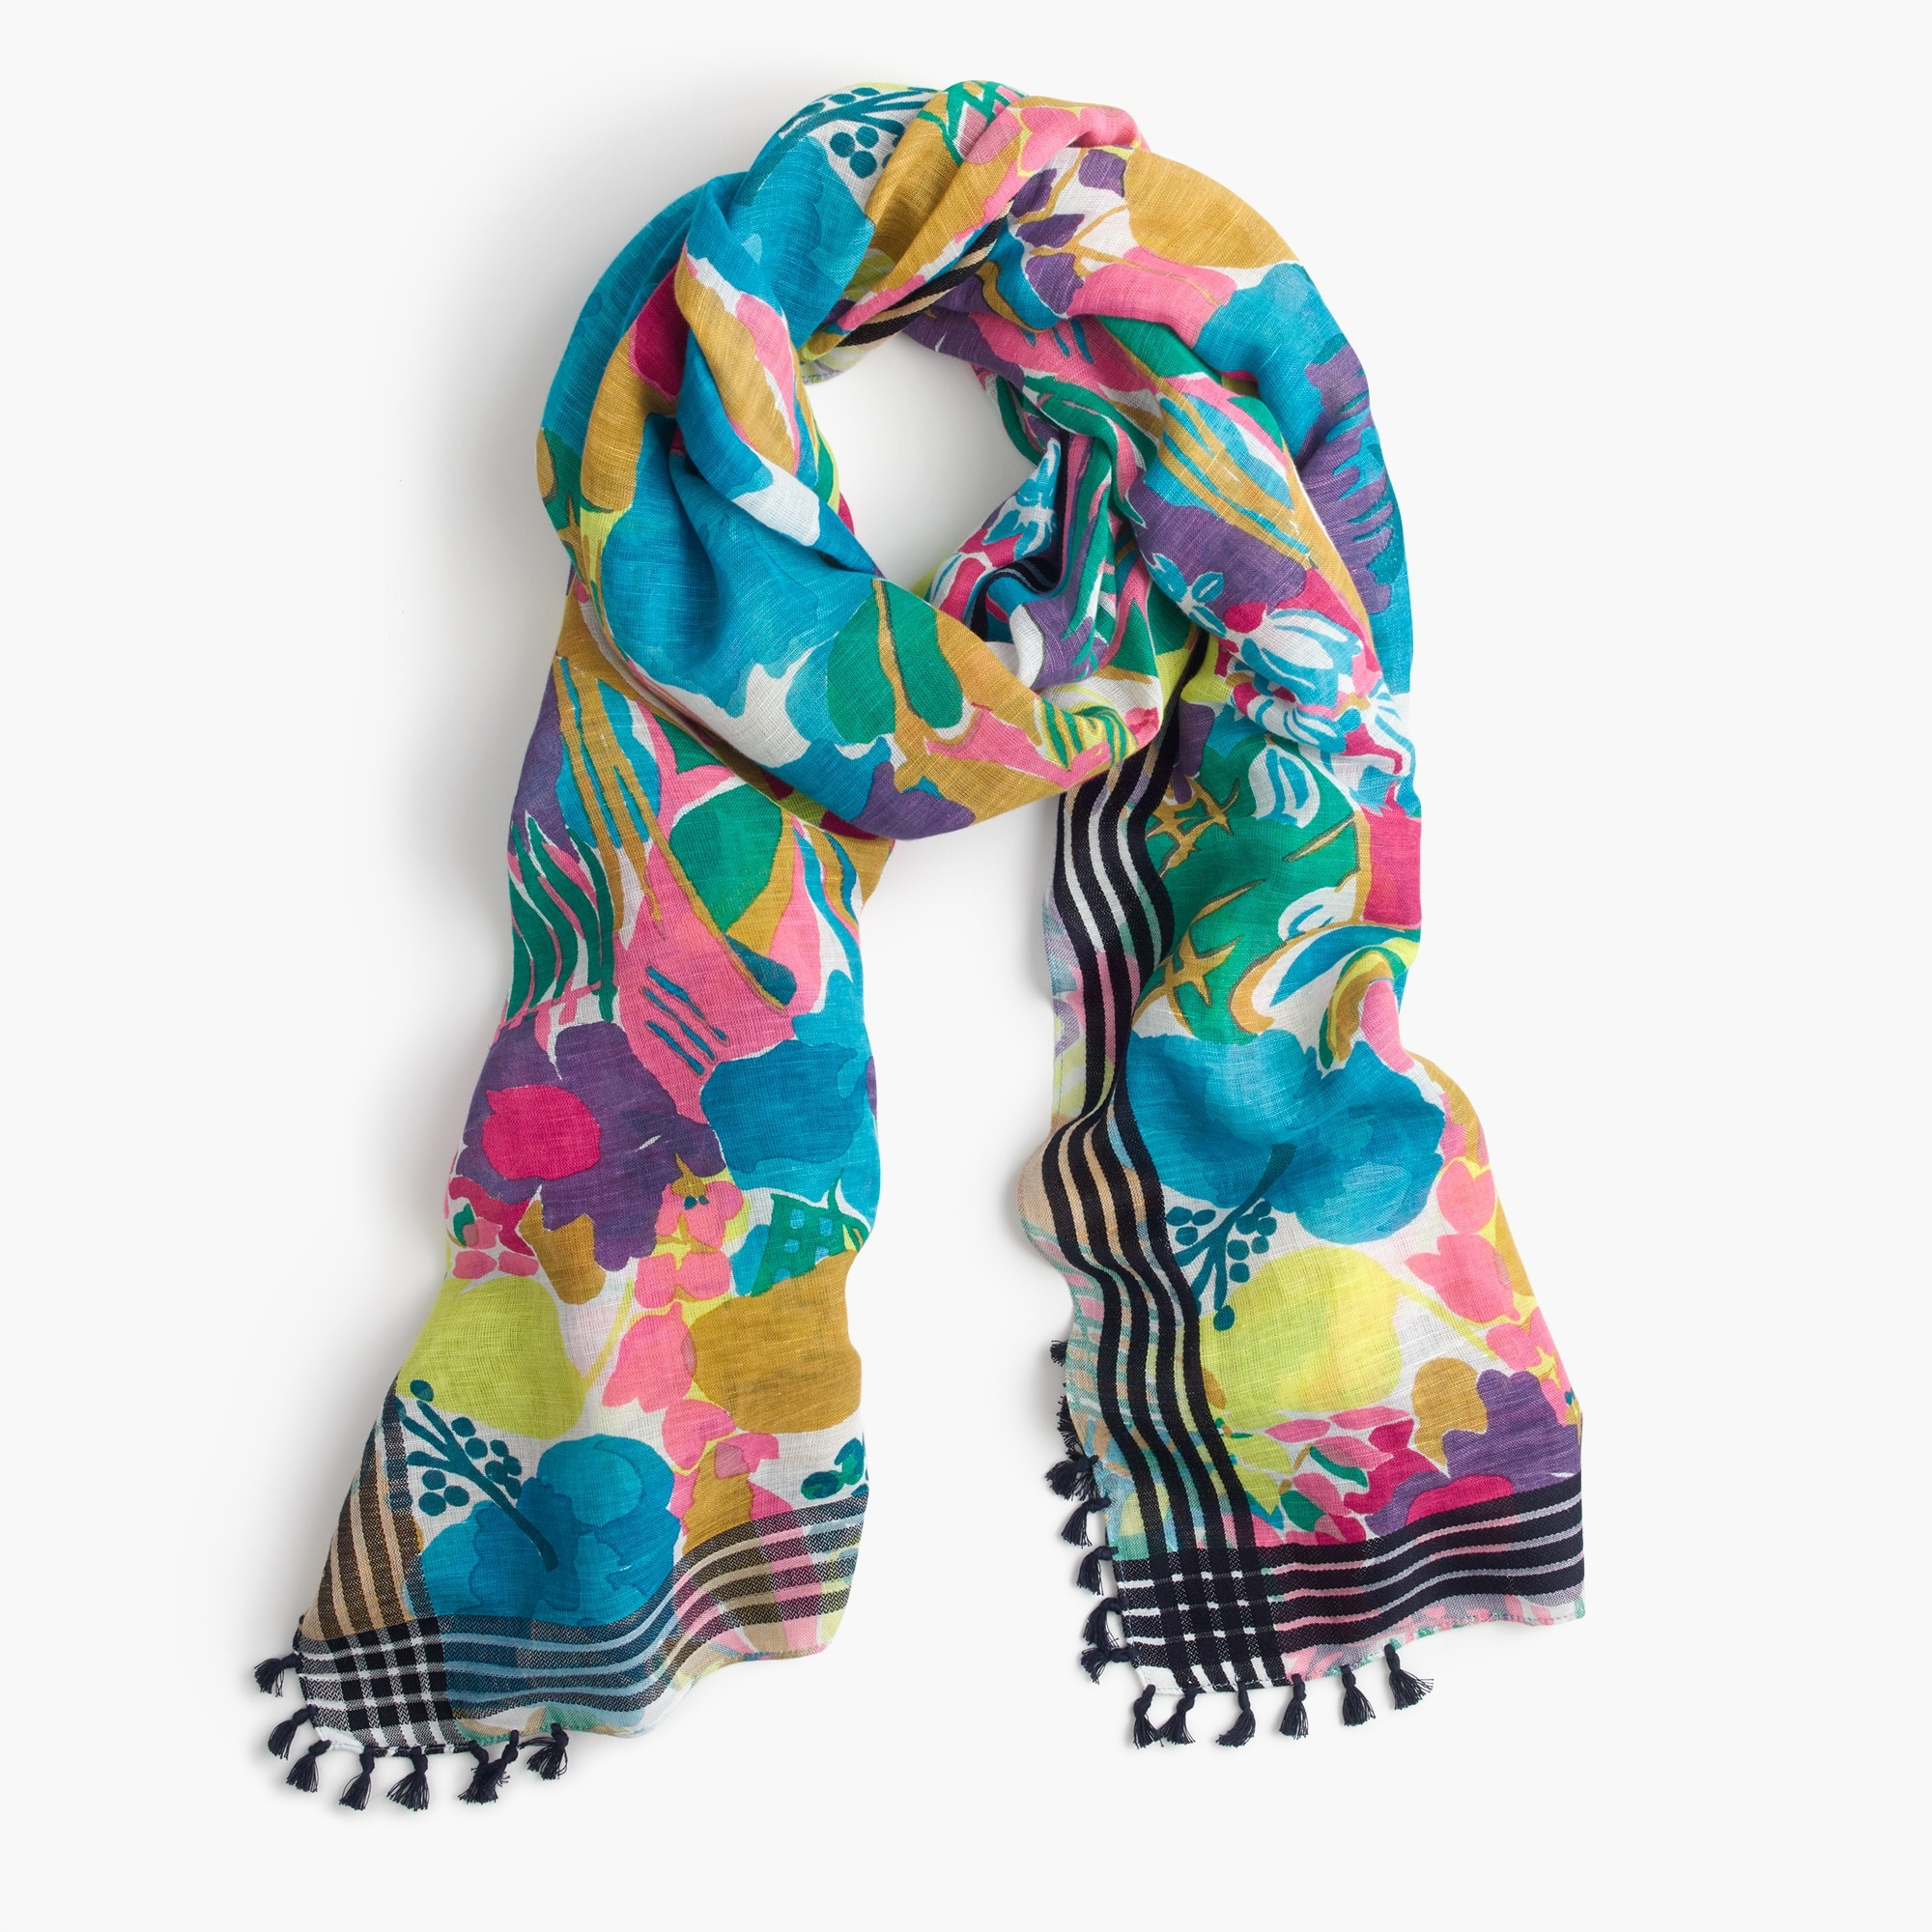 seaside floral scarf with tassels : women accessories